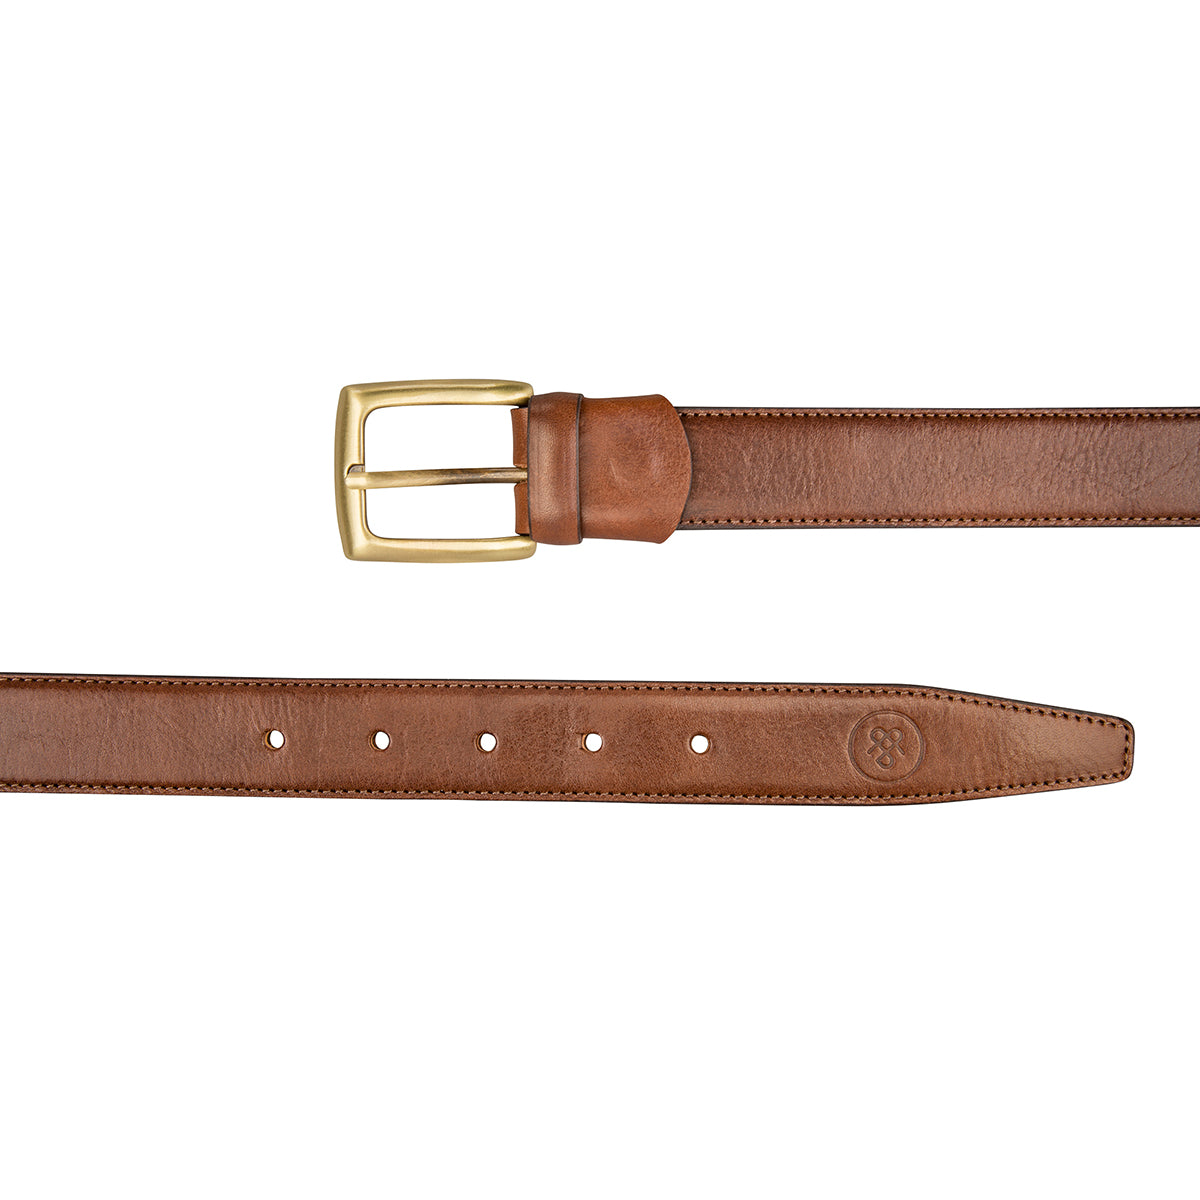 Image 3 of the 'Gianni' Chestnut Veg-Tanned Leather Handmade Belt